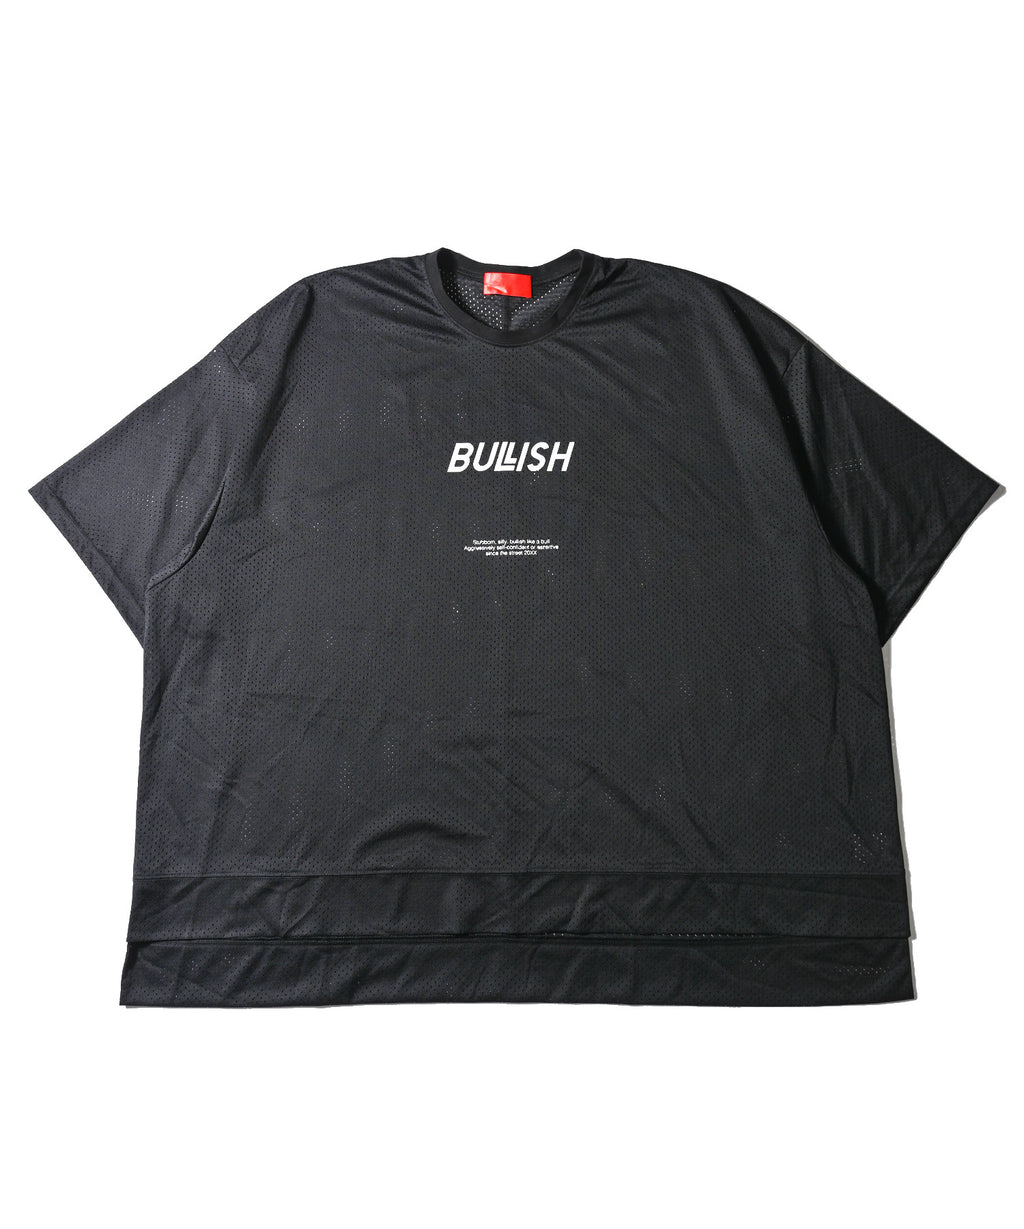 BULLISH LOGO MESH BIG SHORT SLEEVE T-SHIRT